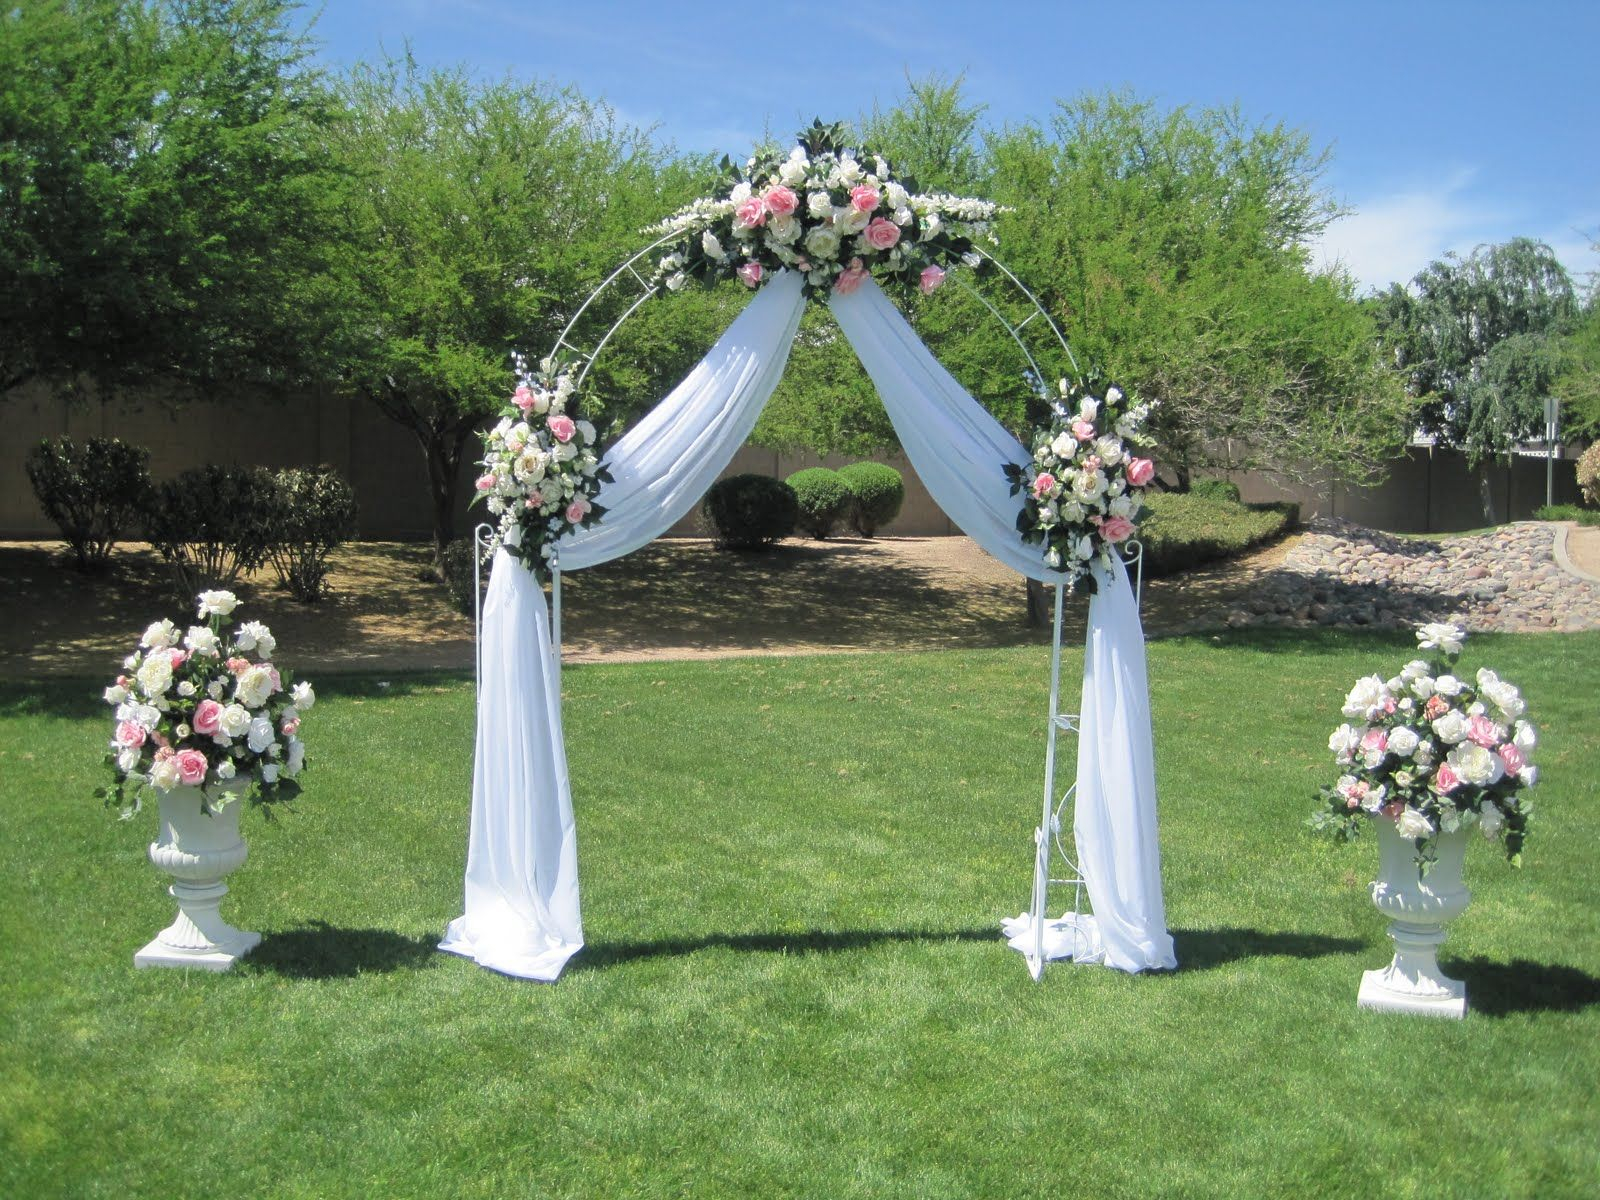 Wedding gazebo decorating ideas white wrought iron arch 3 white wedding gazebo decorating ideas white wrought iron arch 3 white floral swags voile drapery 2 junglespirit